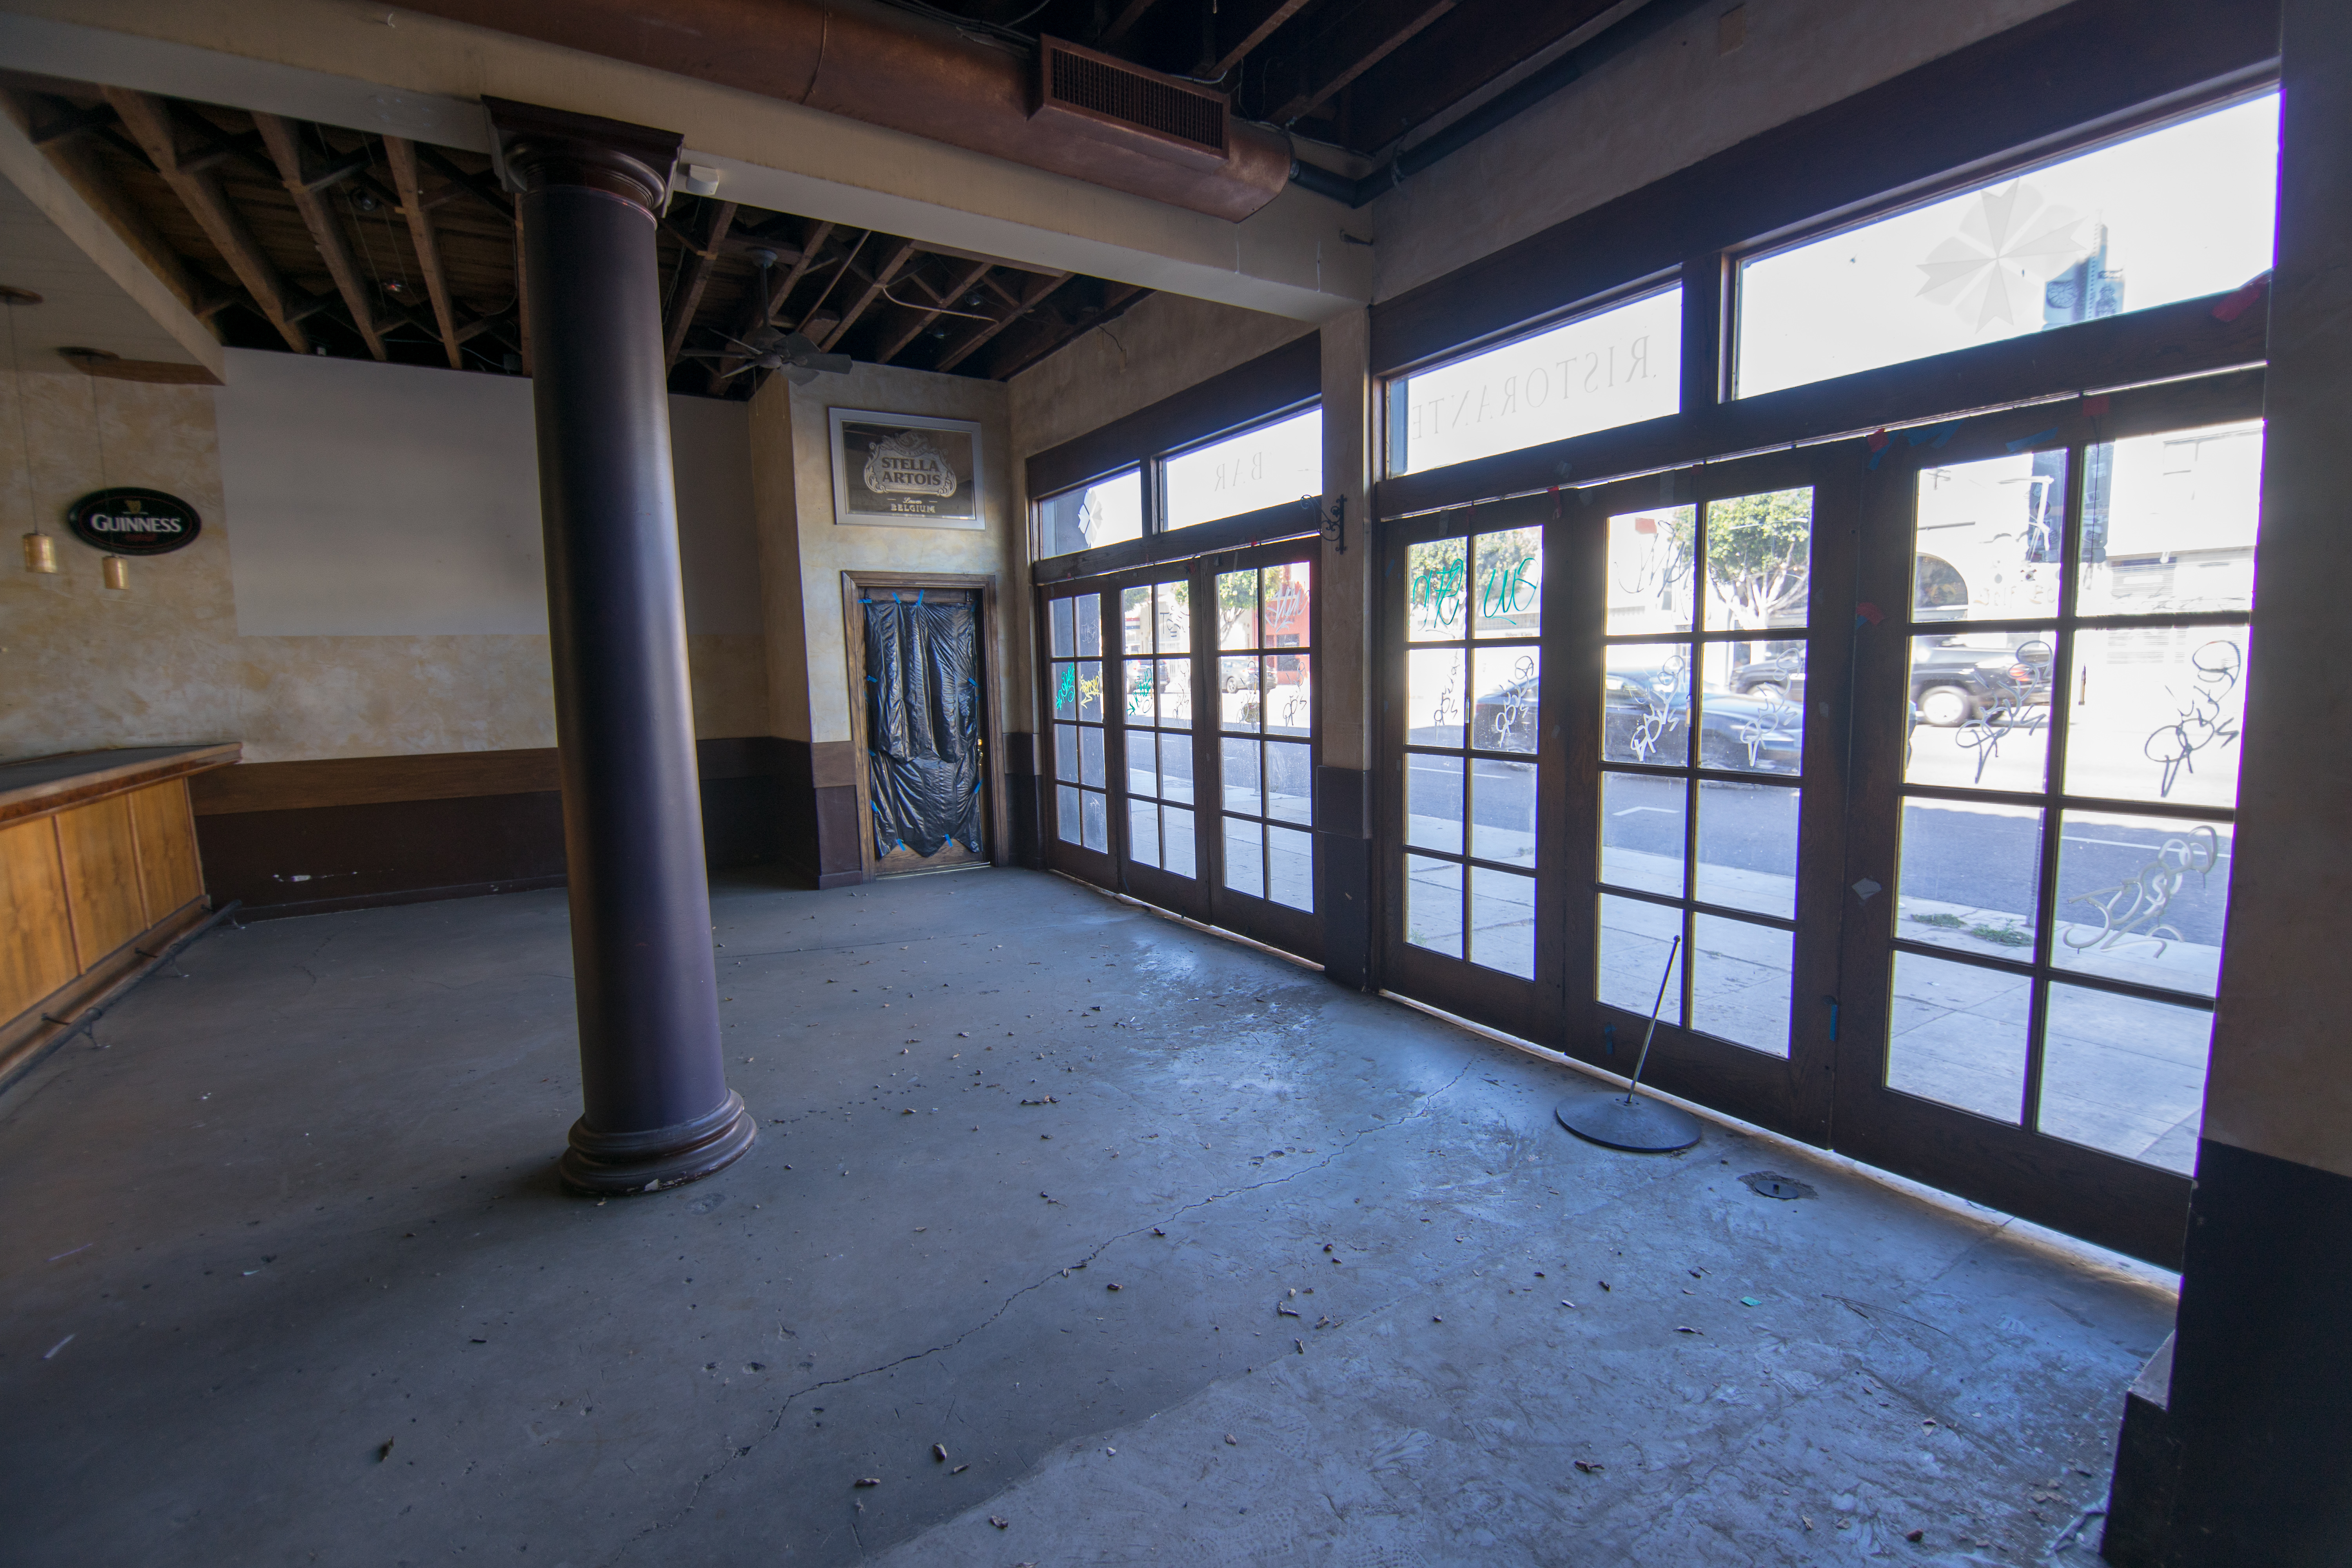 1st Floor Windows and Dining Area